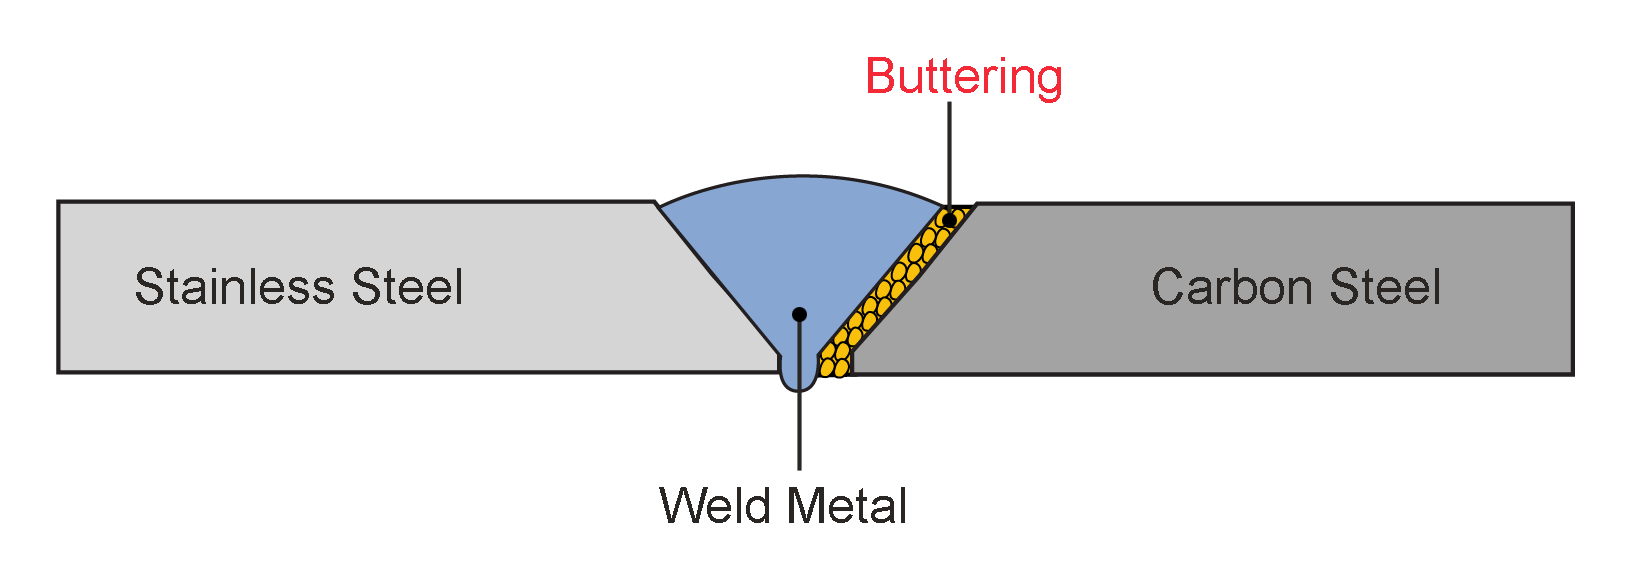 Buttering american welding society education online click to enlarge biocorpaavc Gallery